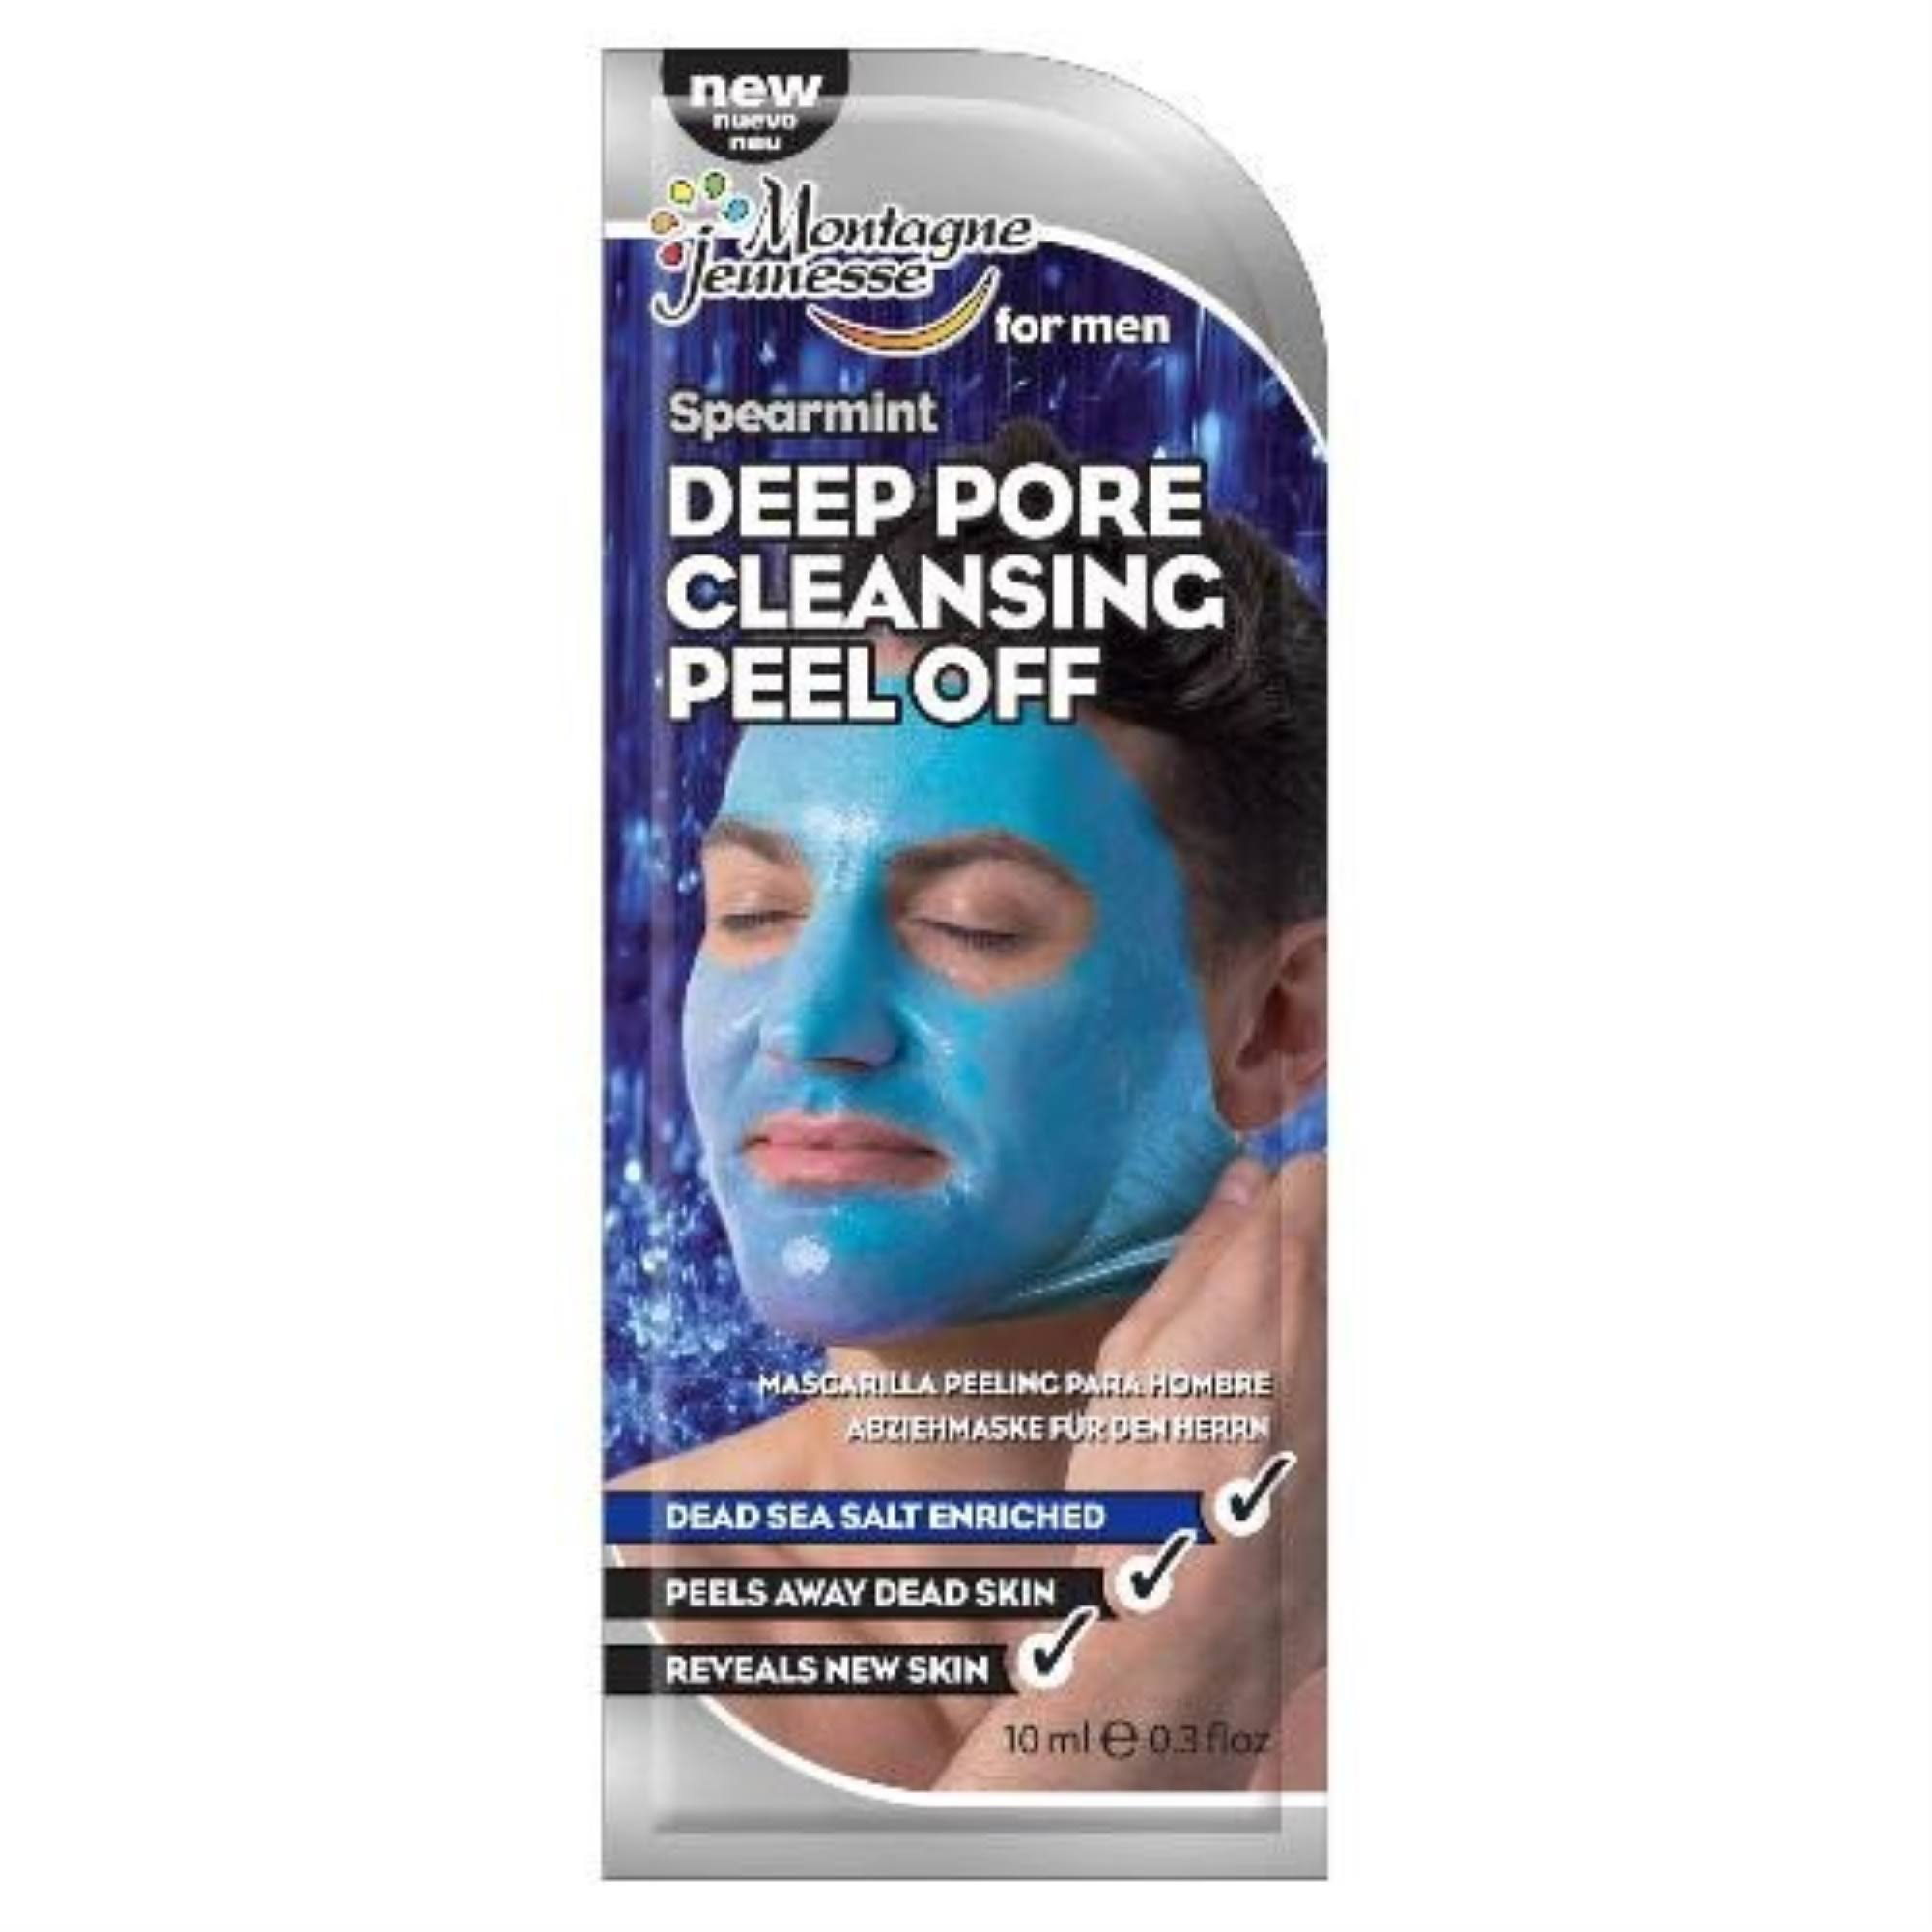 Montagne Jeunesse Deep Pore Cleansing Peel Off for Men - Spearmint, 10ml